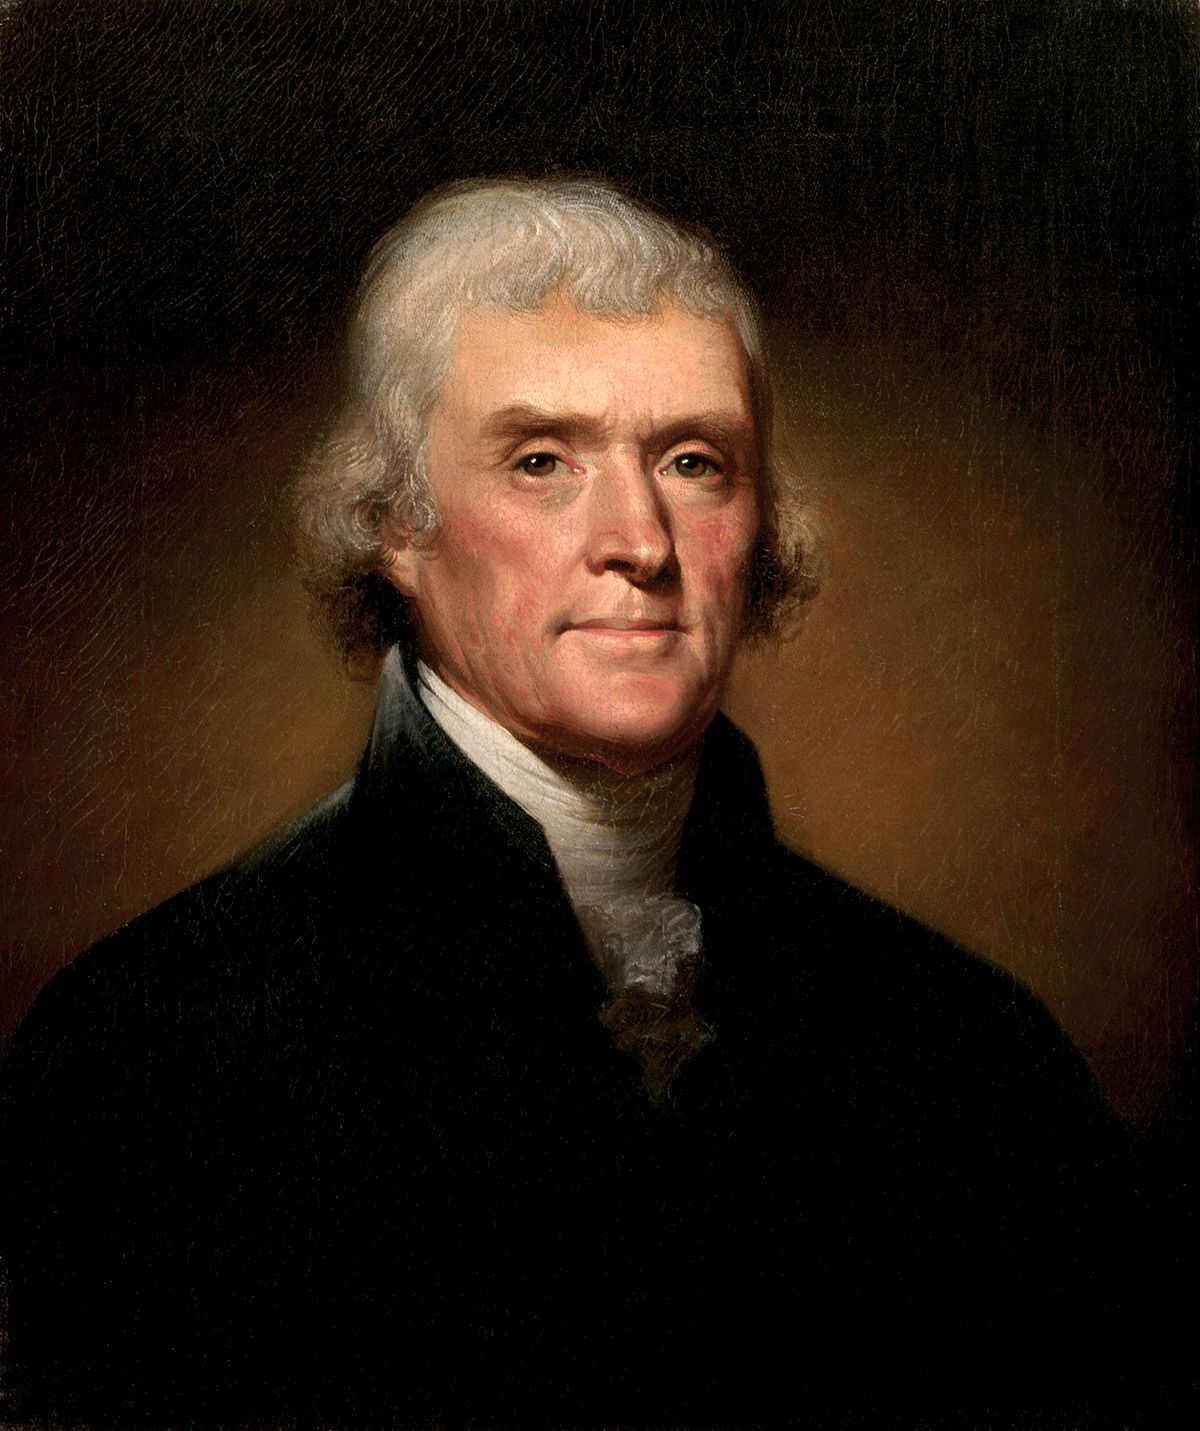 thomas jefferson vs alexander hamilton essay  thomas jefferson vs alexander hamilton essay